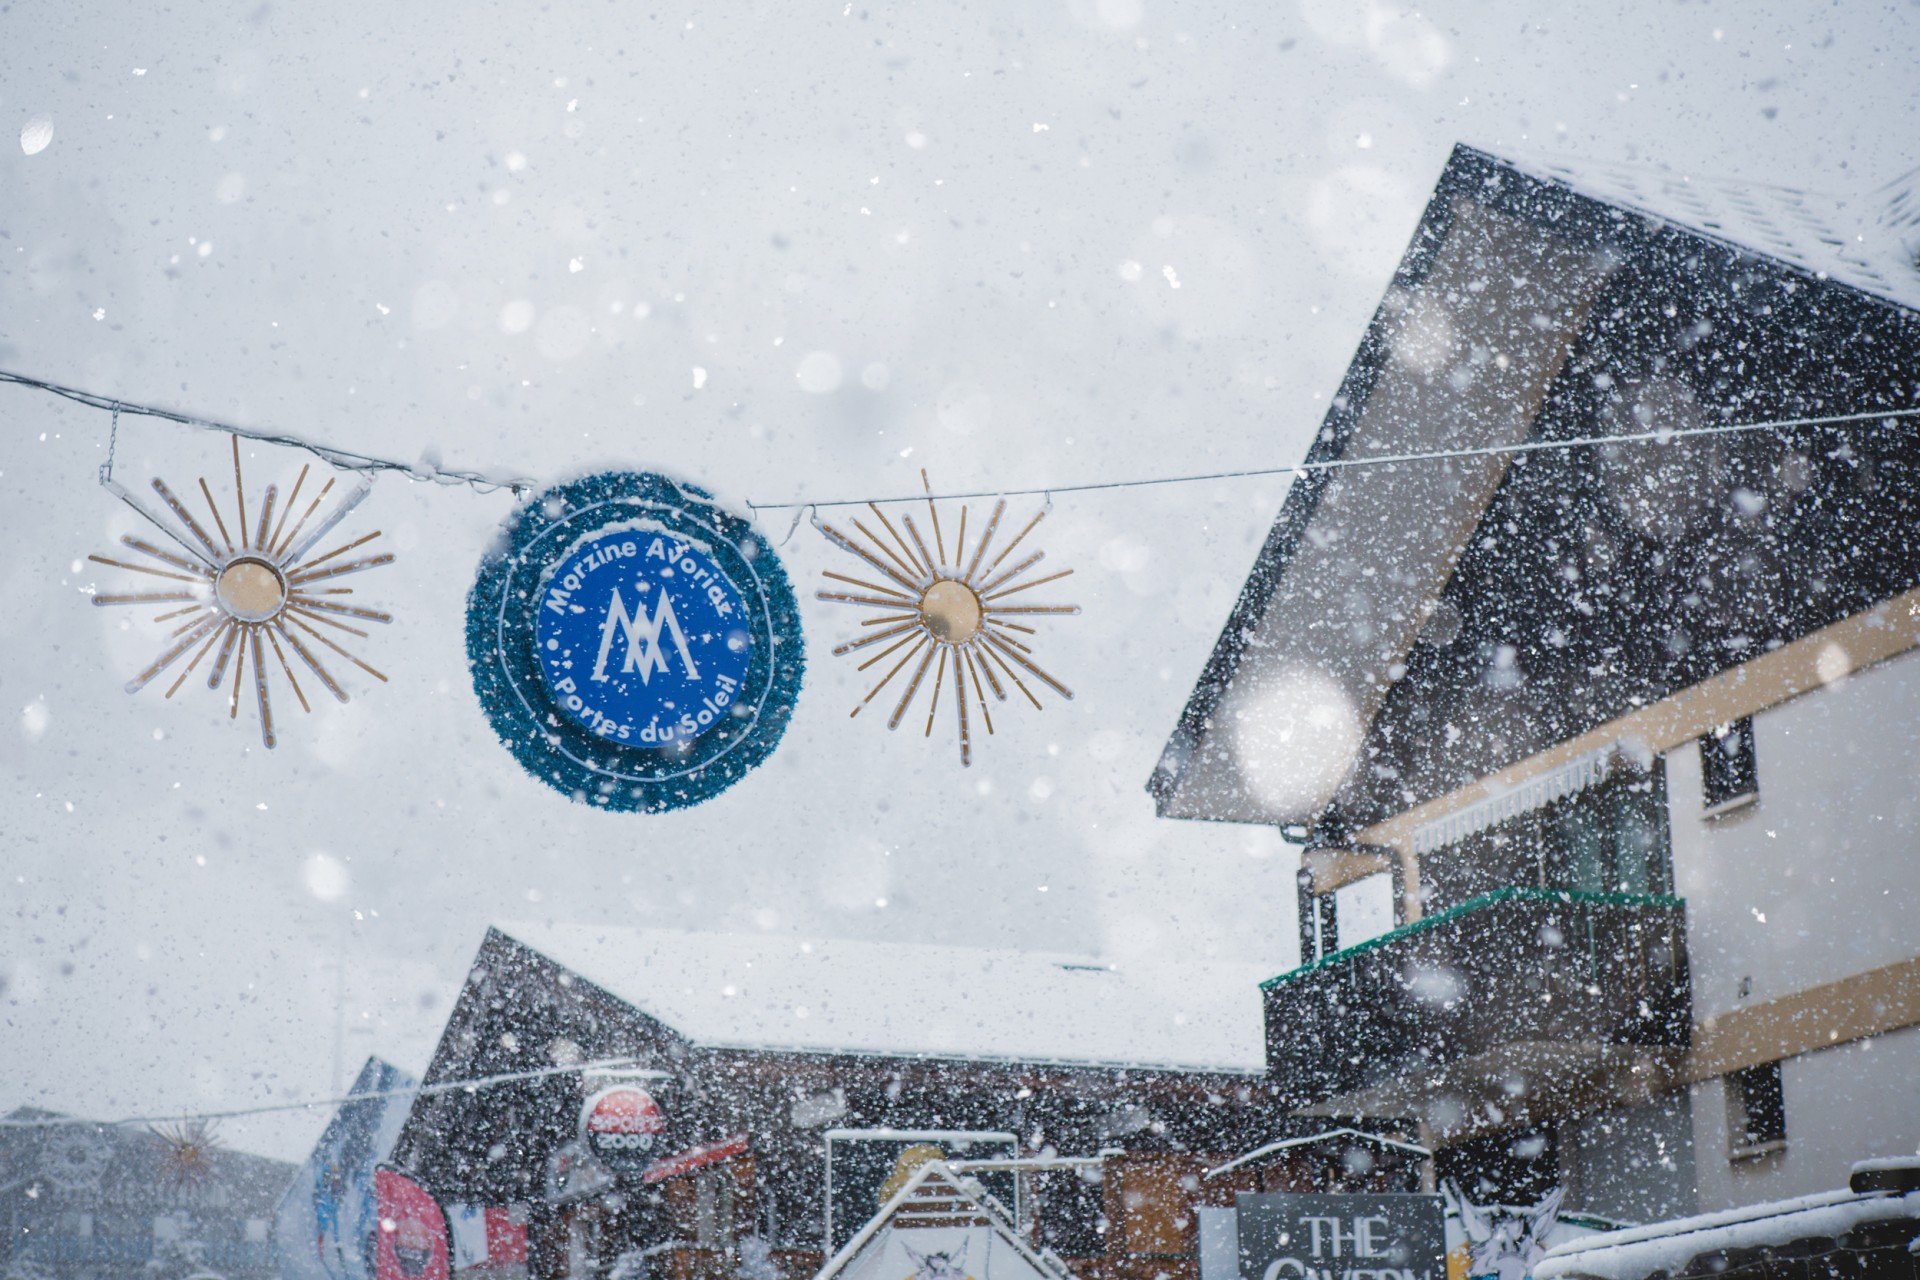 What can I do during the Christmas holidays in Morzine?